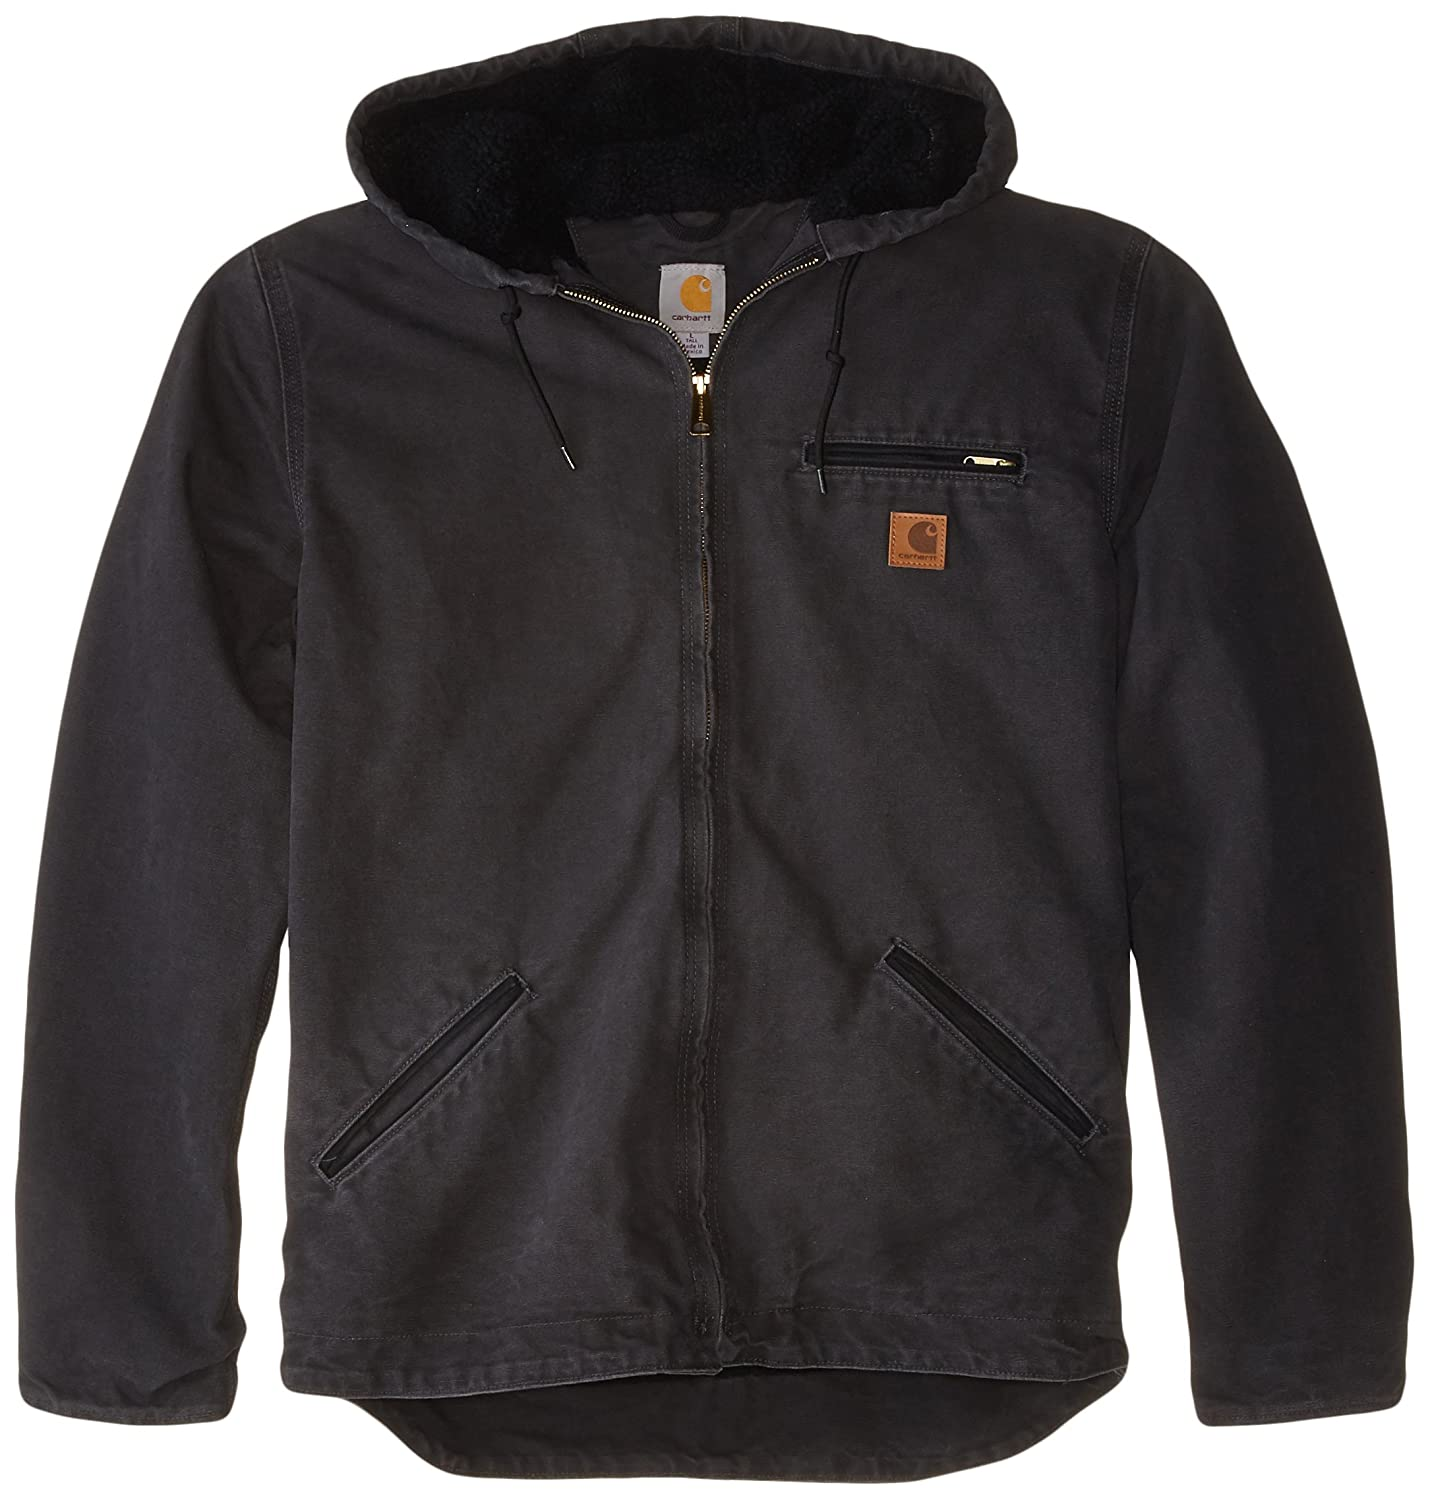 Carhartt OUTERWEAR メンズ シャドー(Shadow) XXX-Large XXX-Largeシャドー(Shadow) B00SBZQLTK